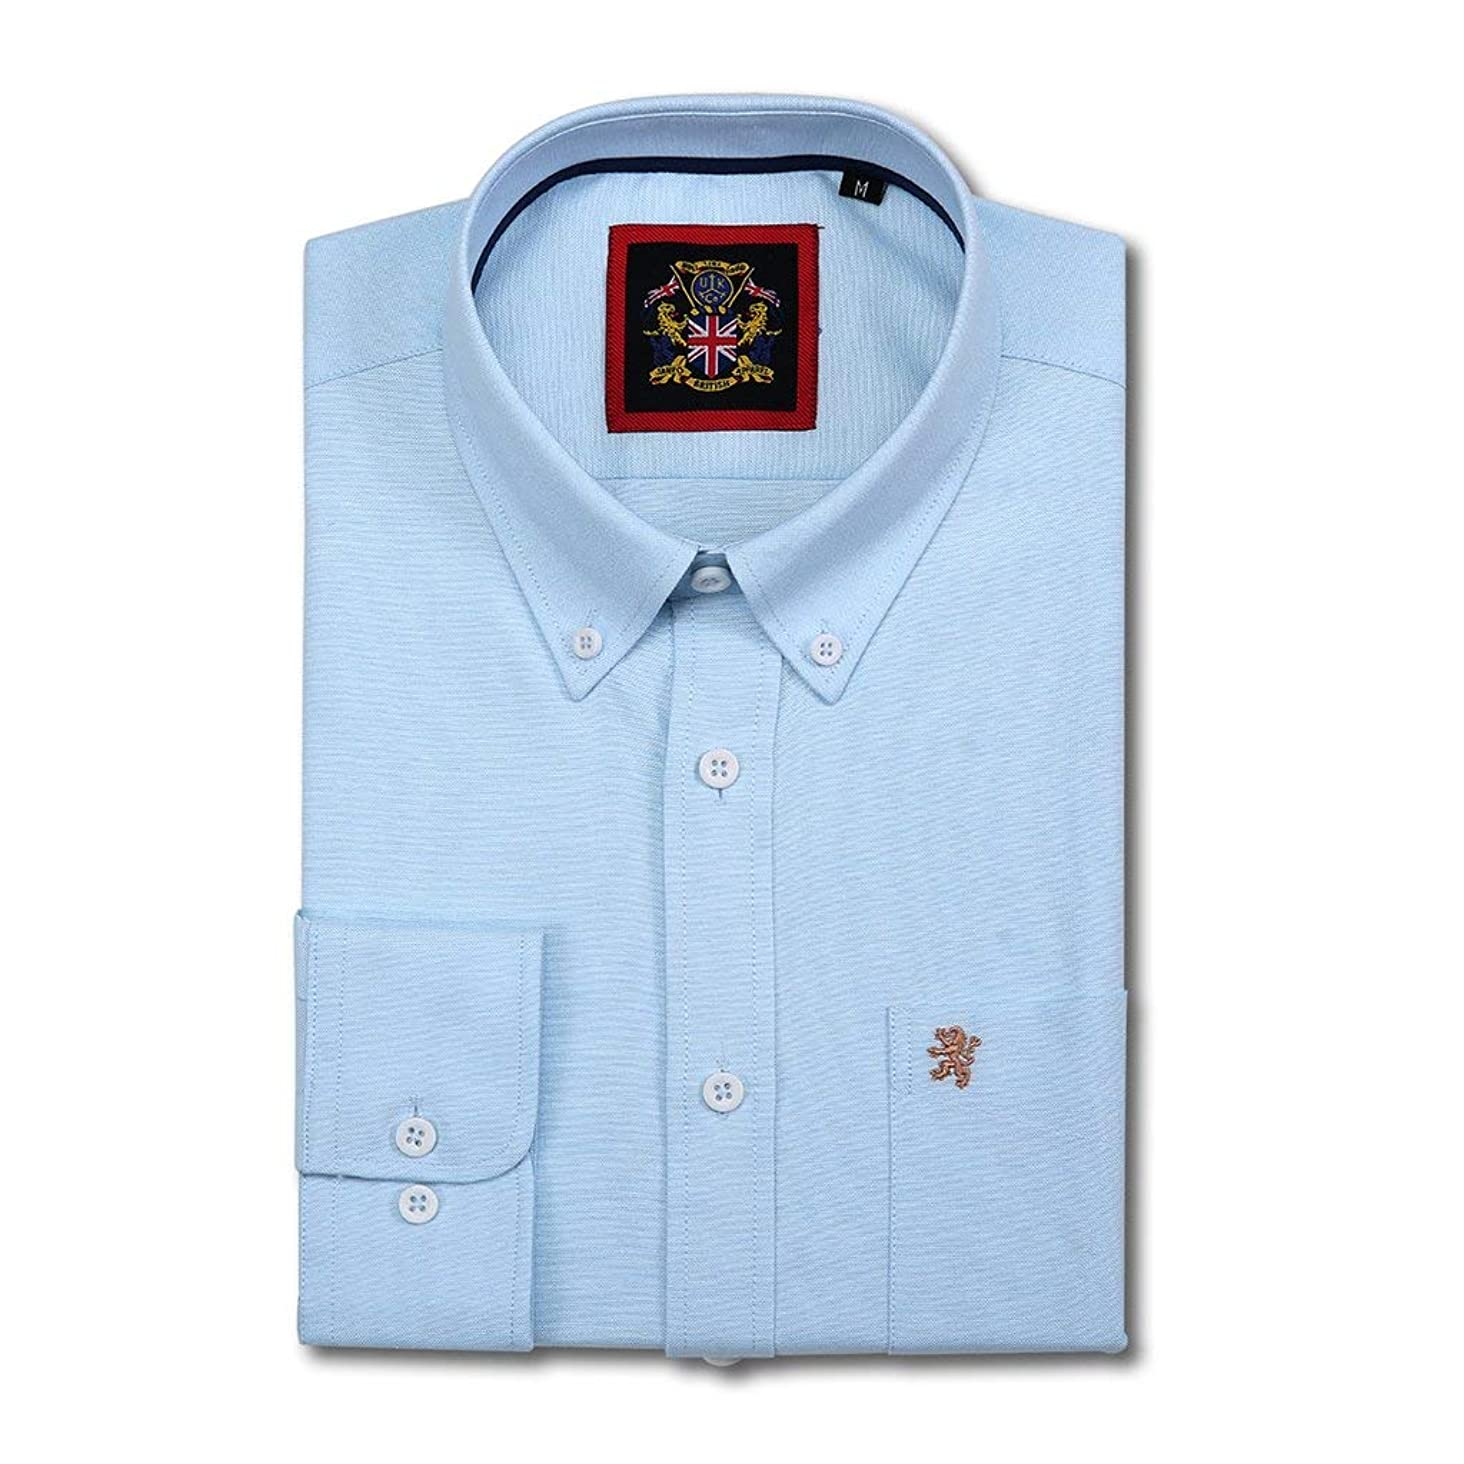 Janeo British Apparel Long Sleeve Shirt, Mens English Oxford Button Down Collar